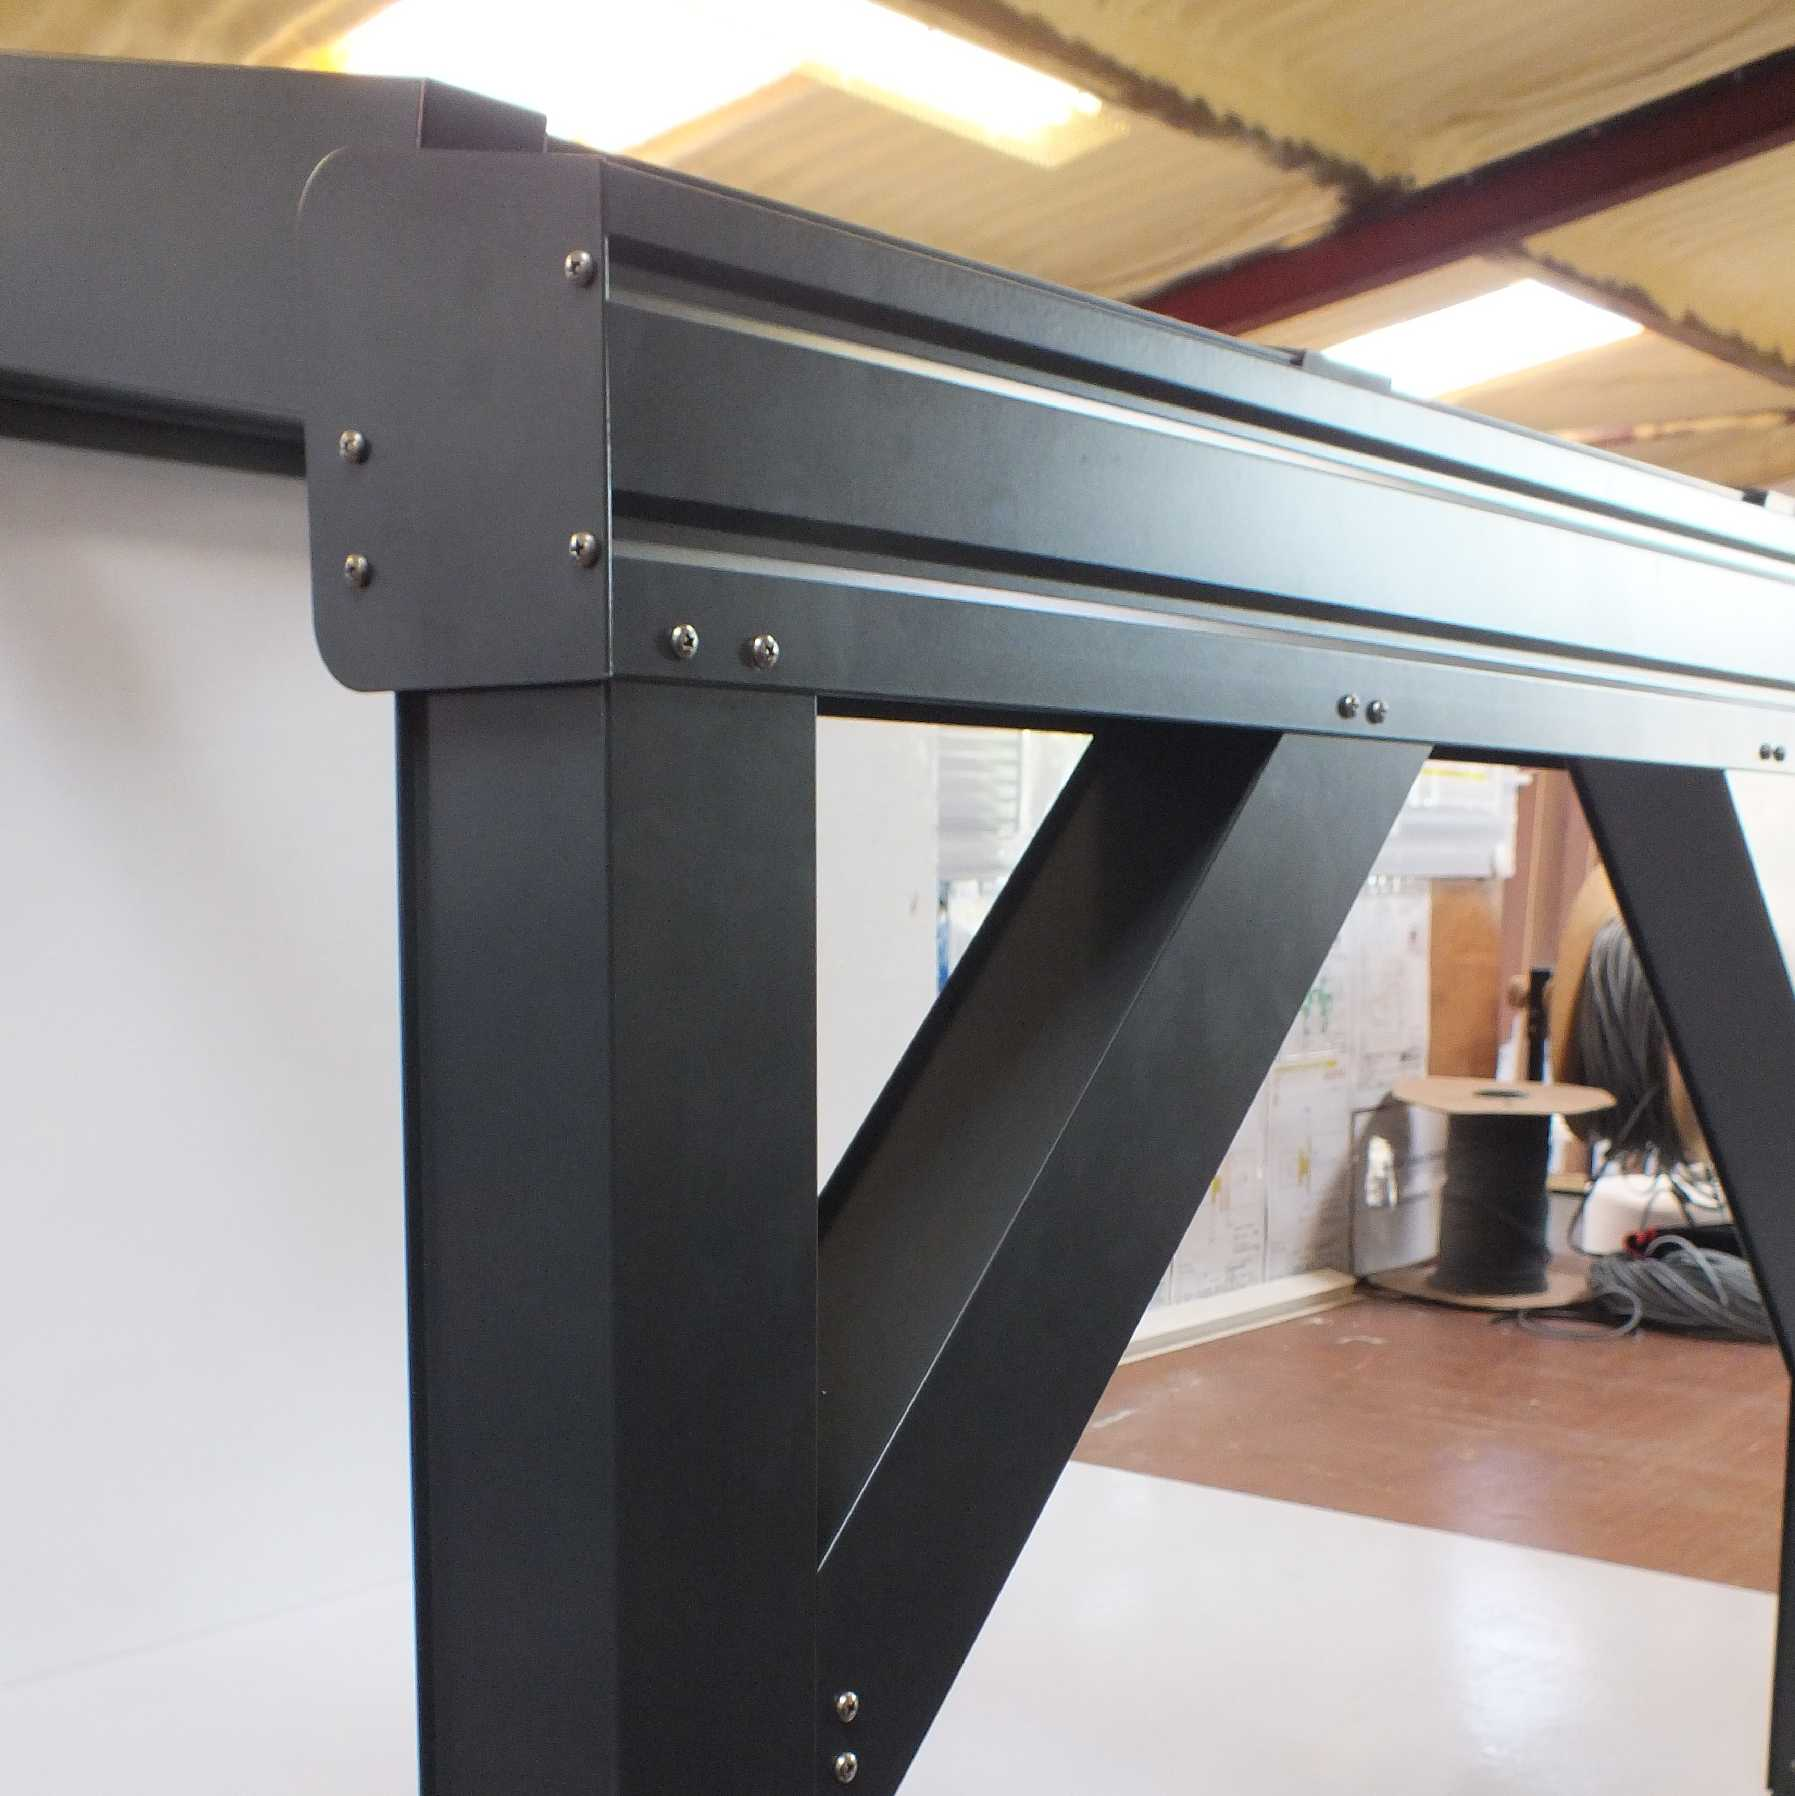 Omega Smart Lean-To Canopy, Anthracite Grey, UNGLAZED for 6mm Glazing - 9.8m (W) x 2.0m (P), (5) Supporting Posts from Omega Build